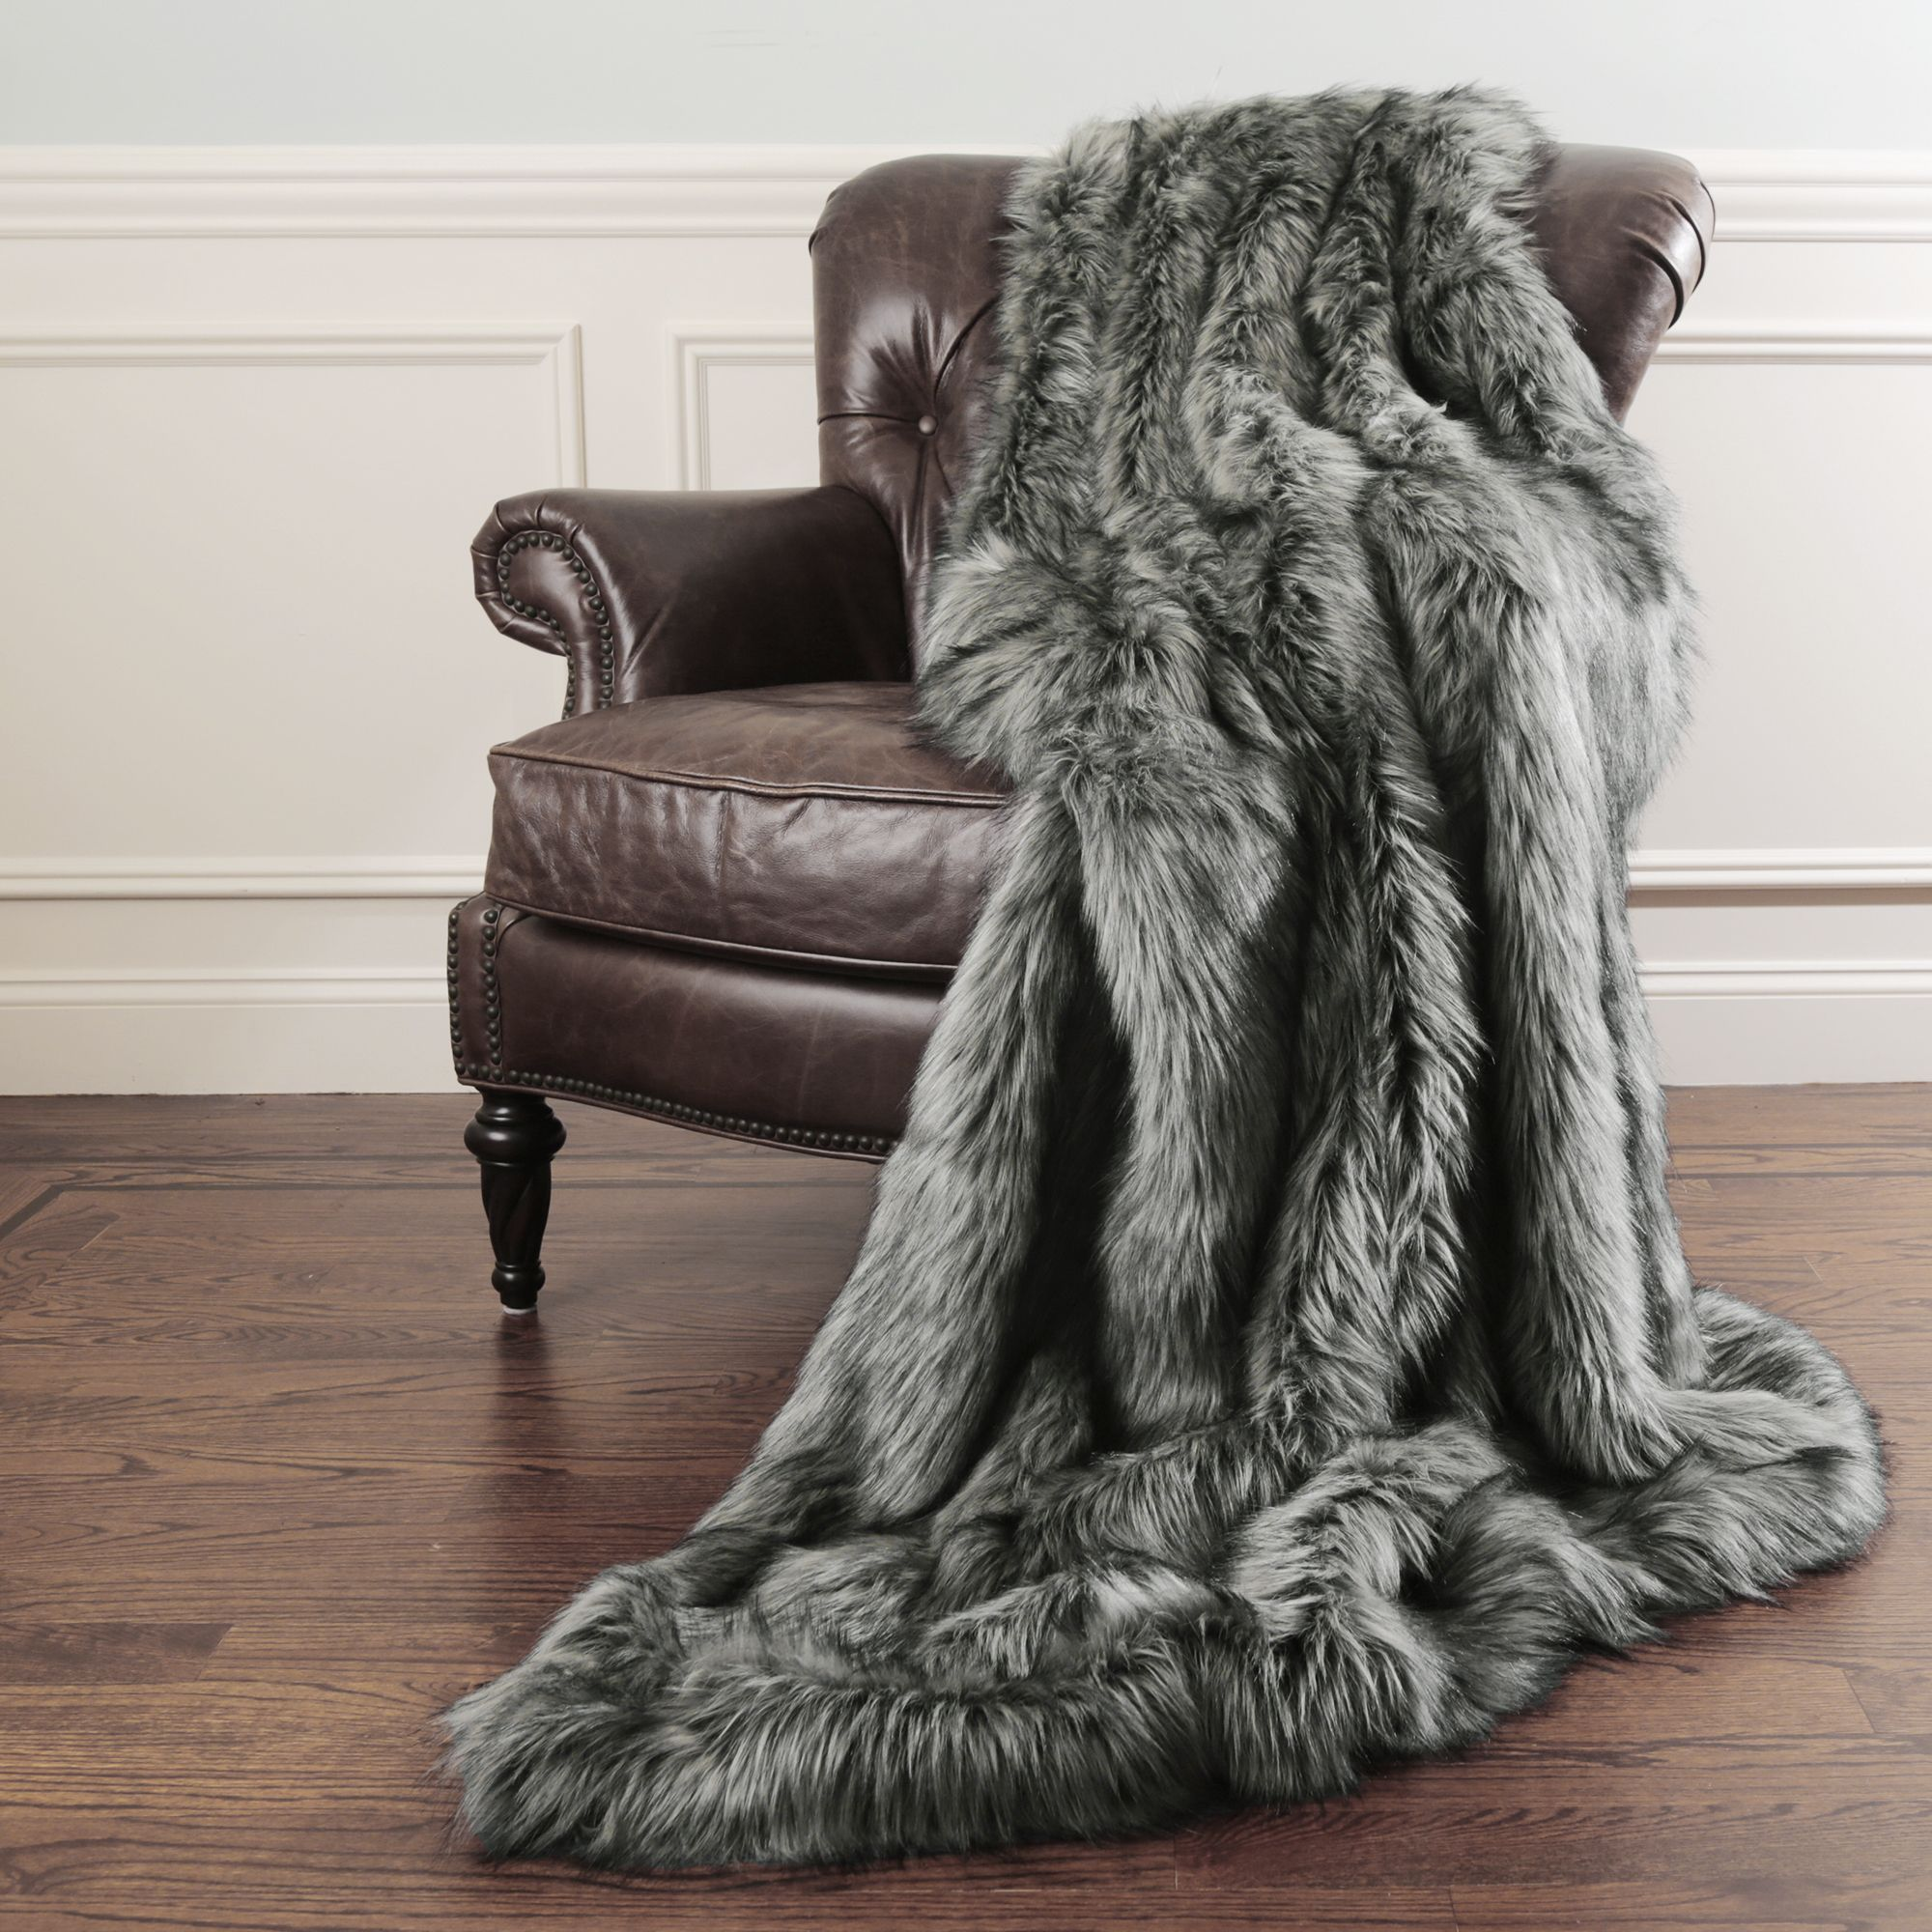 Each Faux Fur Throw Comes With A Faux Fur Key Chain The